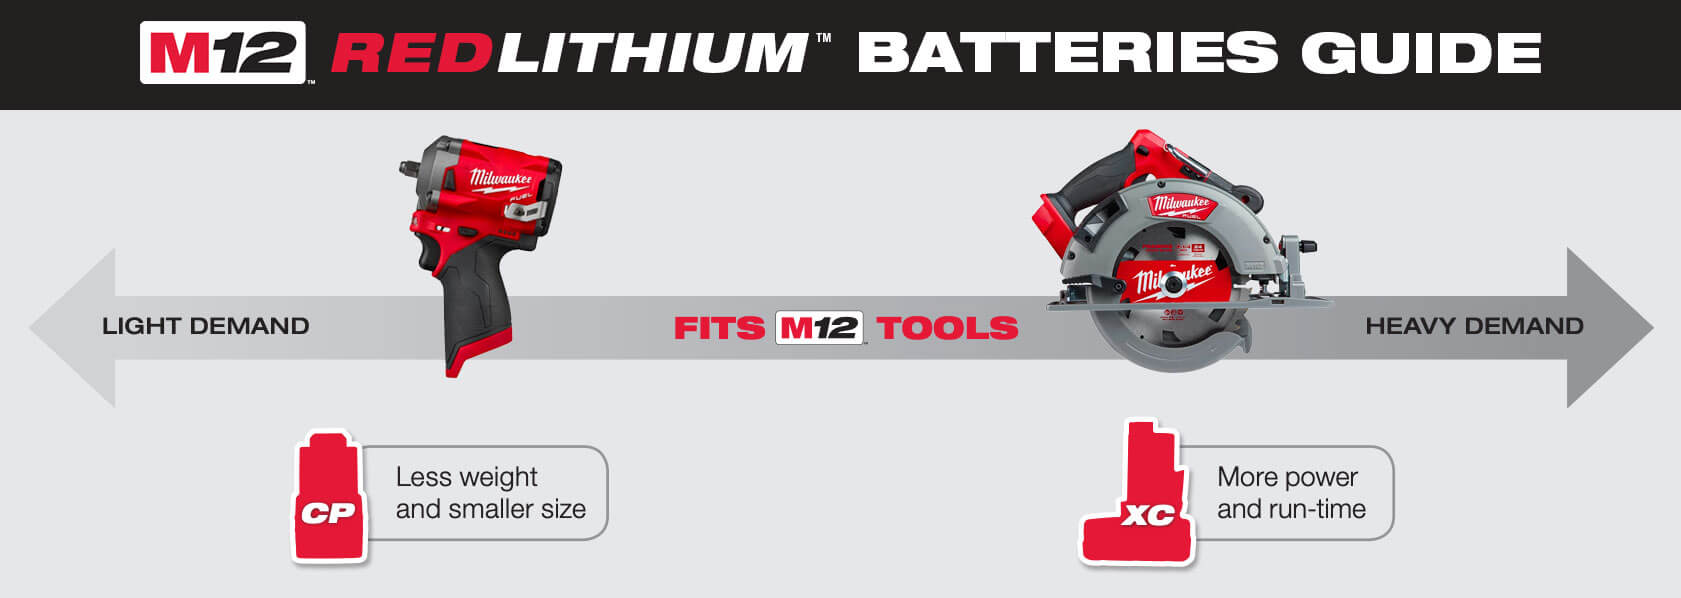 M12 Battery Guide